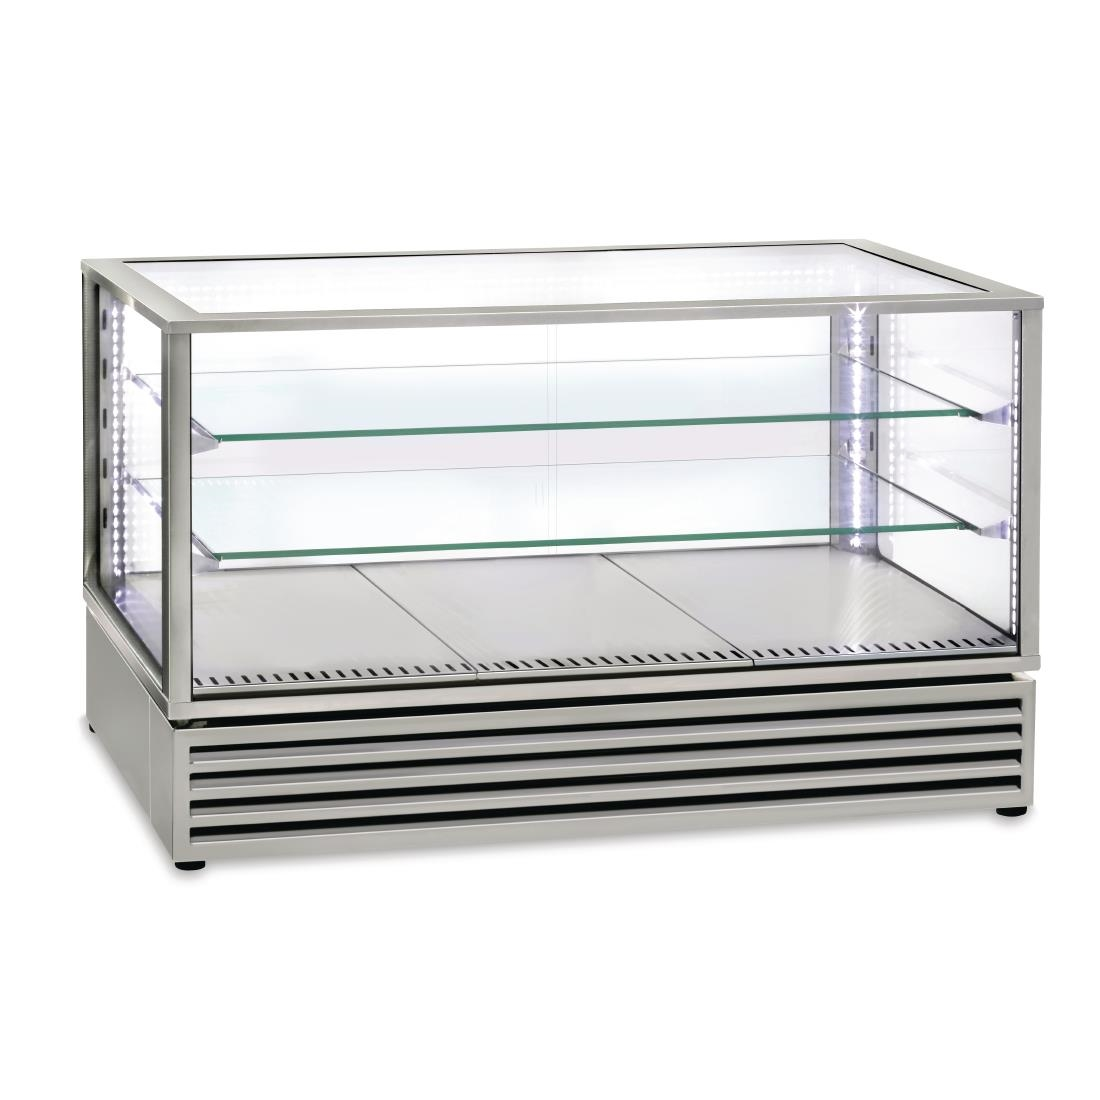 Roller Grill Countertop Display Fridge 3/1GN Stainless Steel CD1200 I